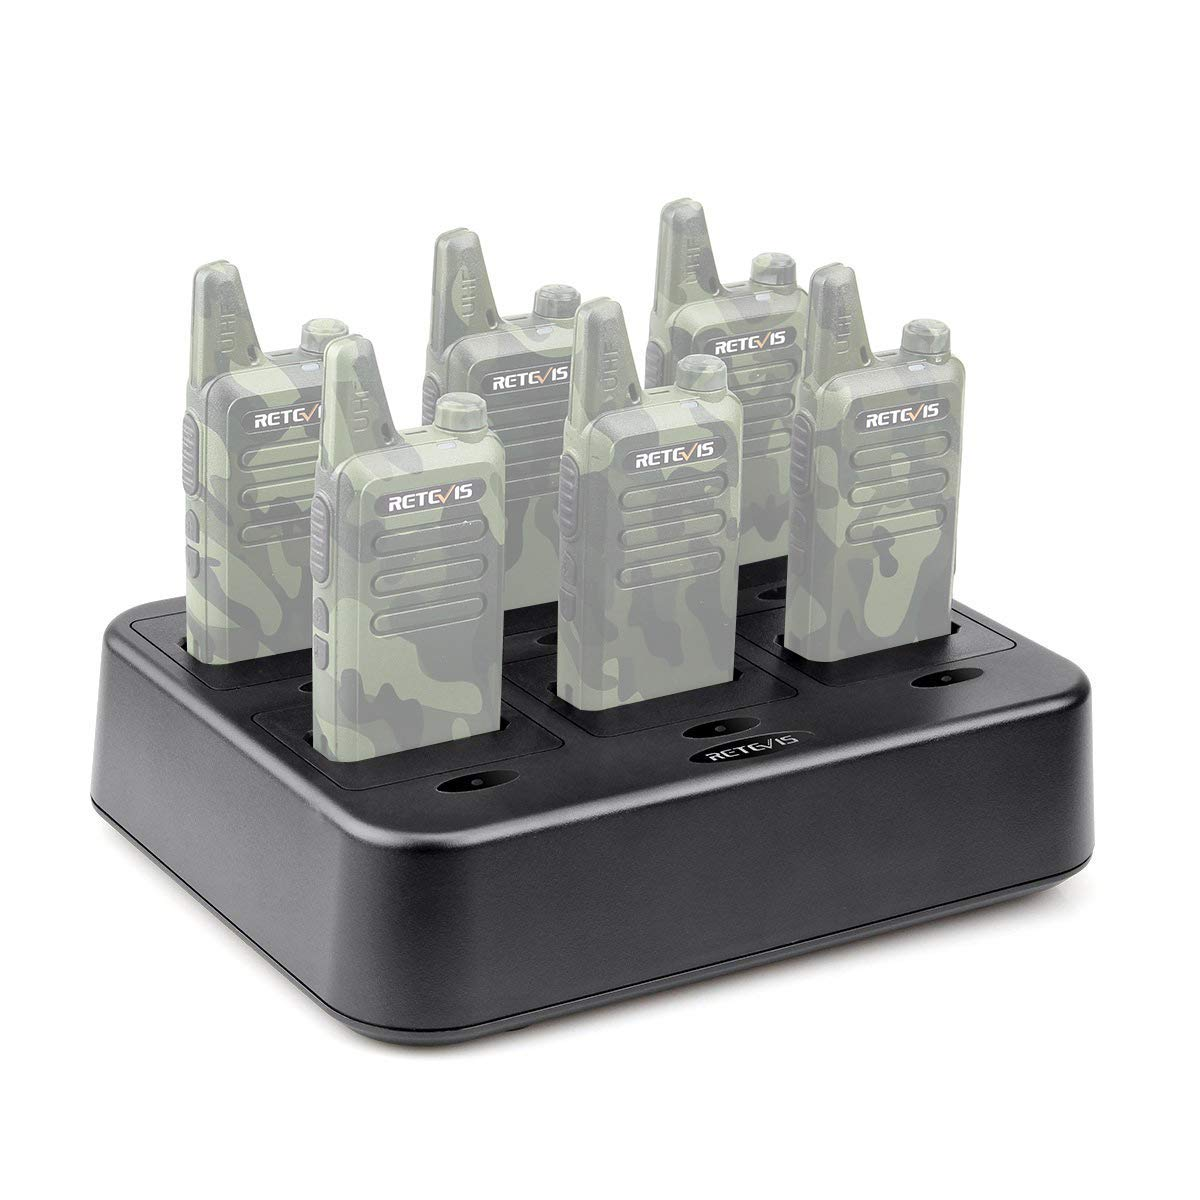 Renewed 1 Pack Retevis RT22 Six-Way Charger Multi Unit Charger/for Retevis RT22 Walkie Talkie and Battery